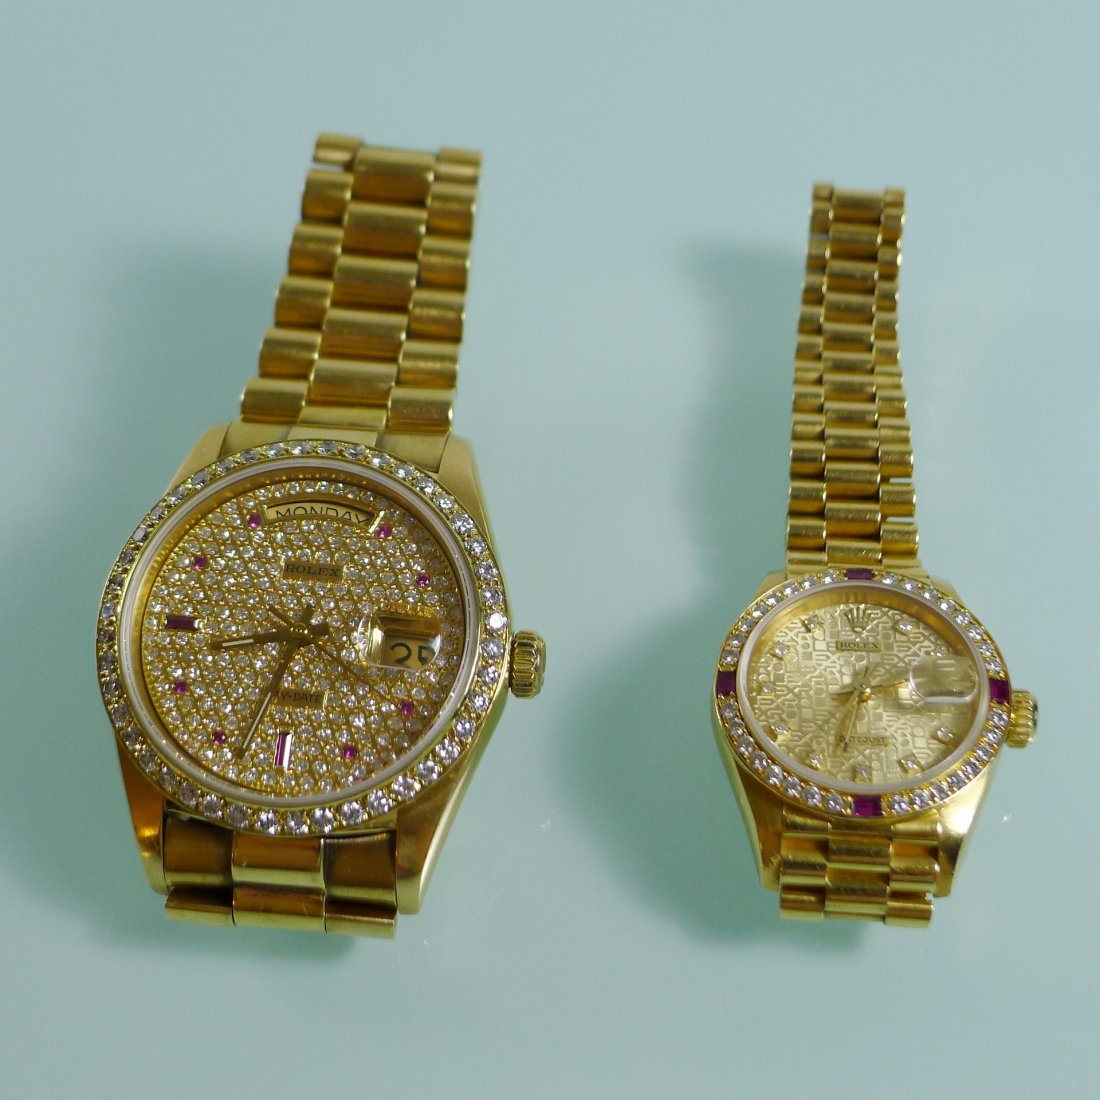 A PAIR OF 18K GOLD ROLEX RUBY & DIAMOND